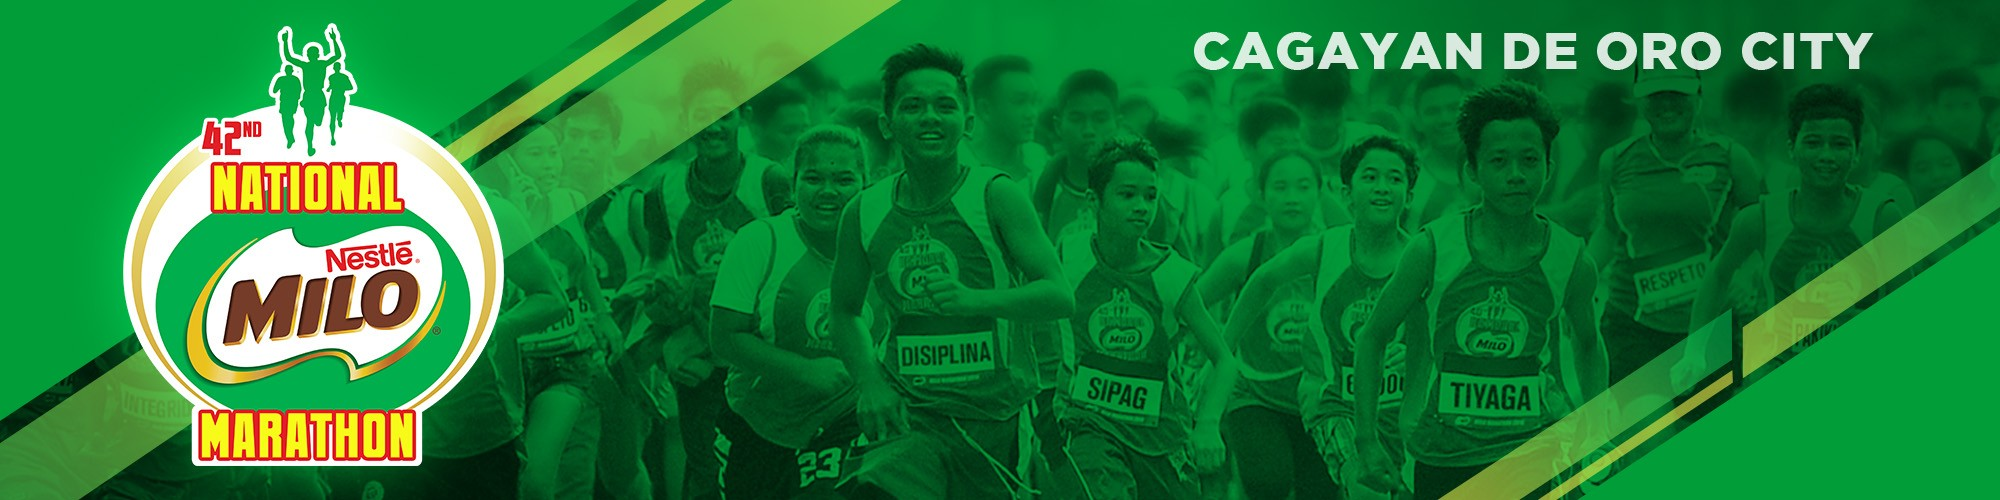 42nd National MILO Marathon - Cagayan De Oro Leg